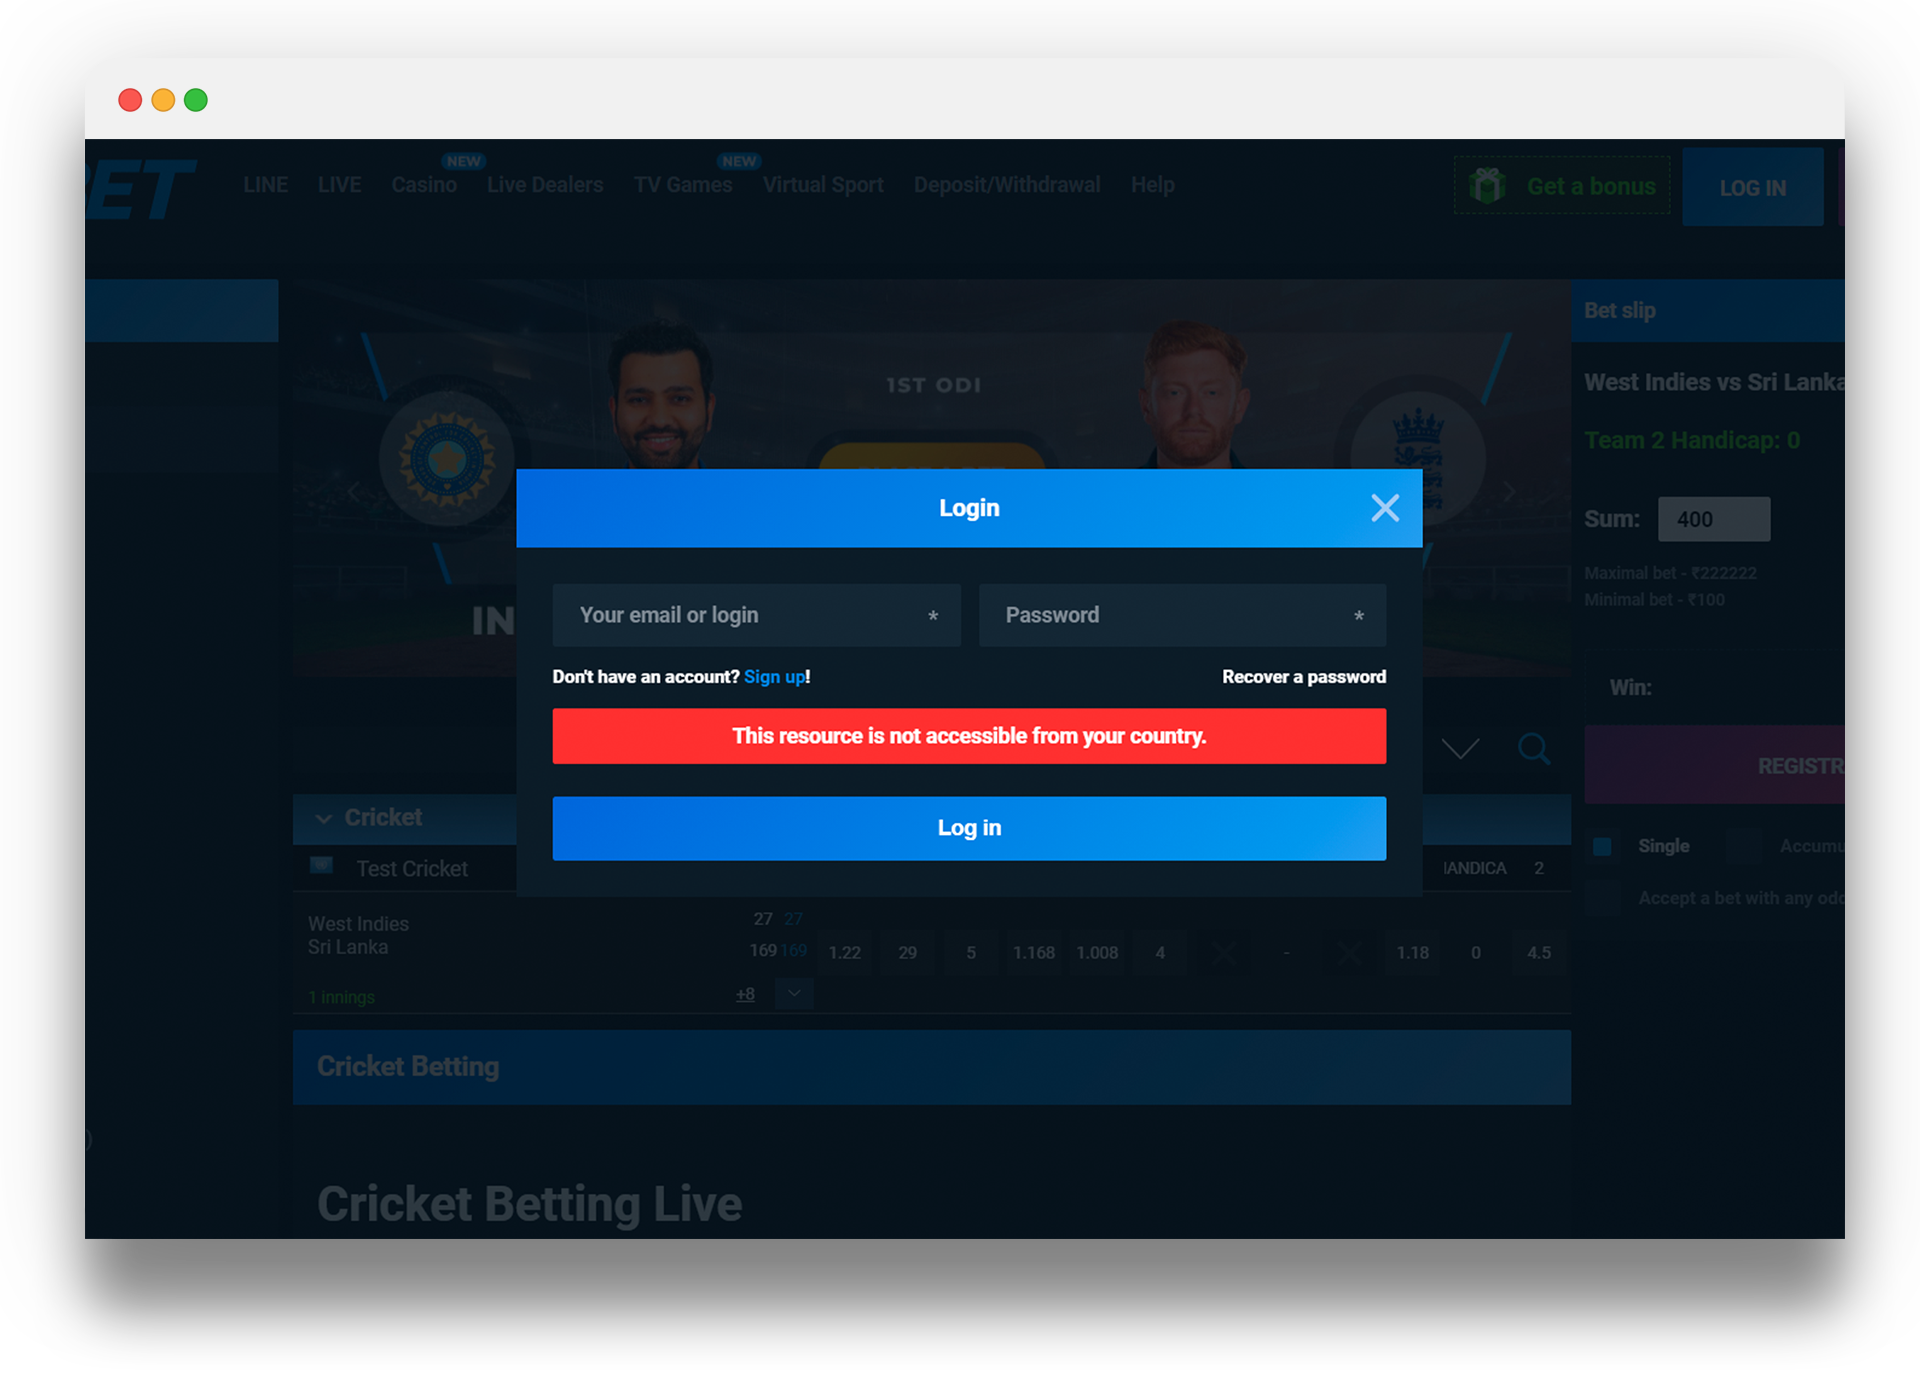 Now you can start betting via your PC or laptop.